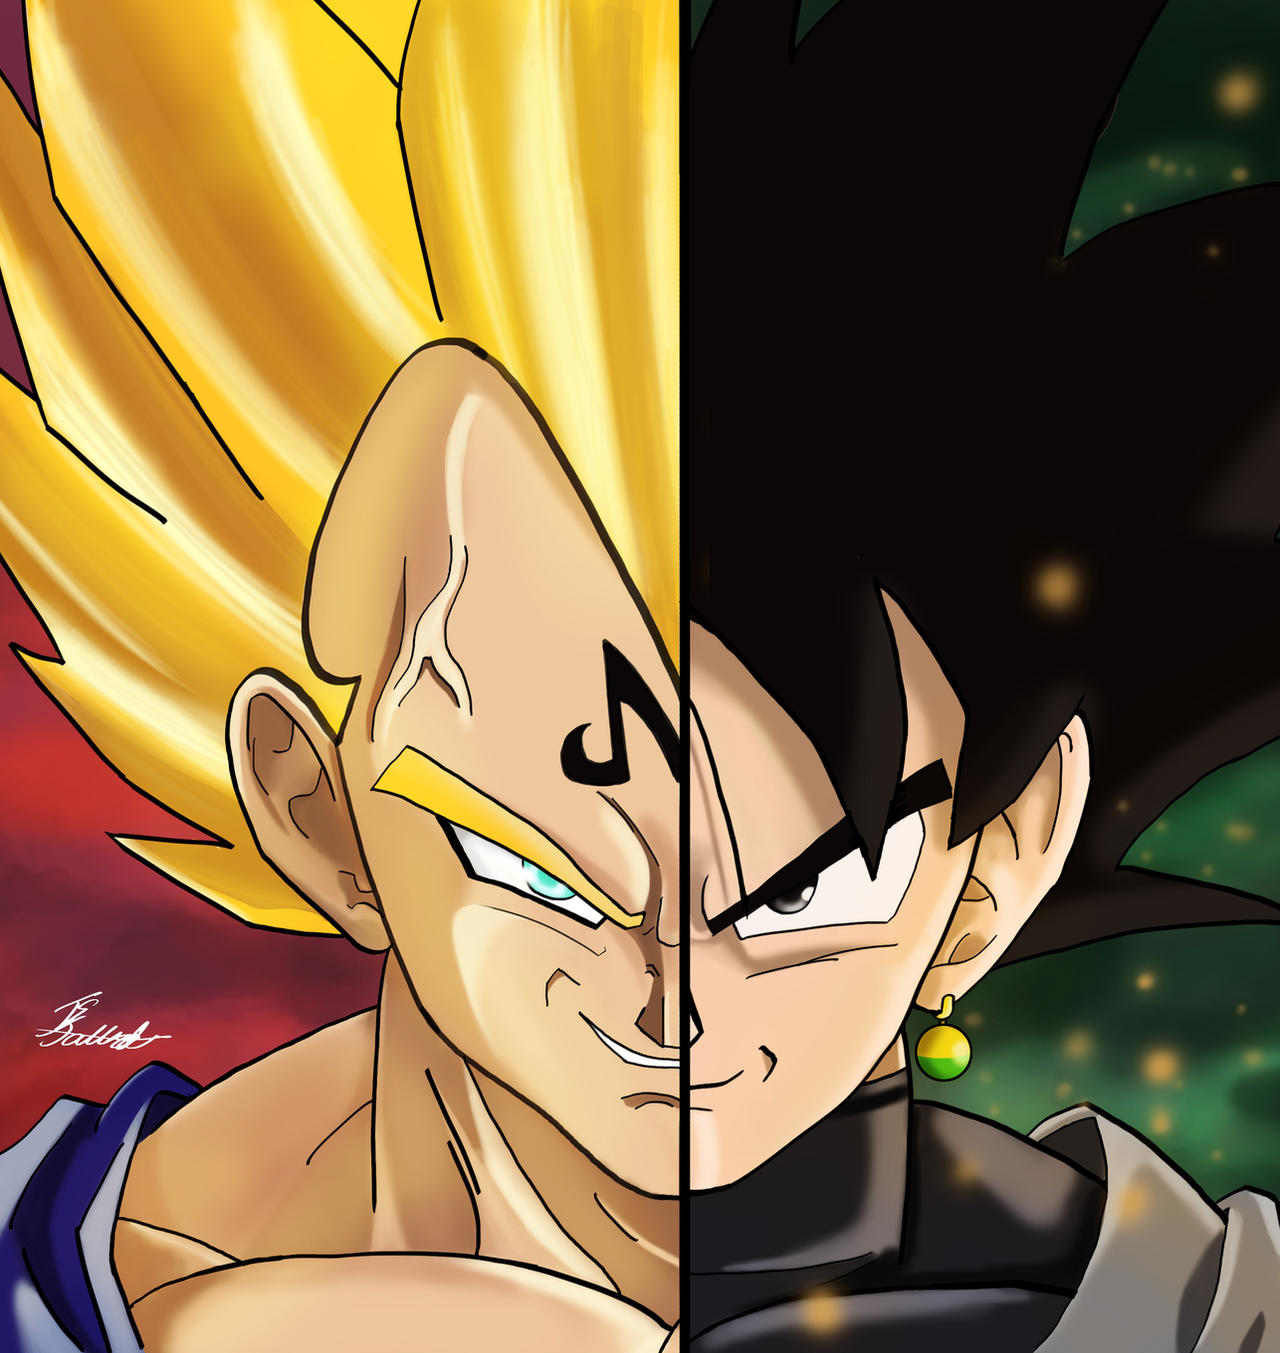 Black Goku And Majin Vegeta By Tsjas On DeviantArt